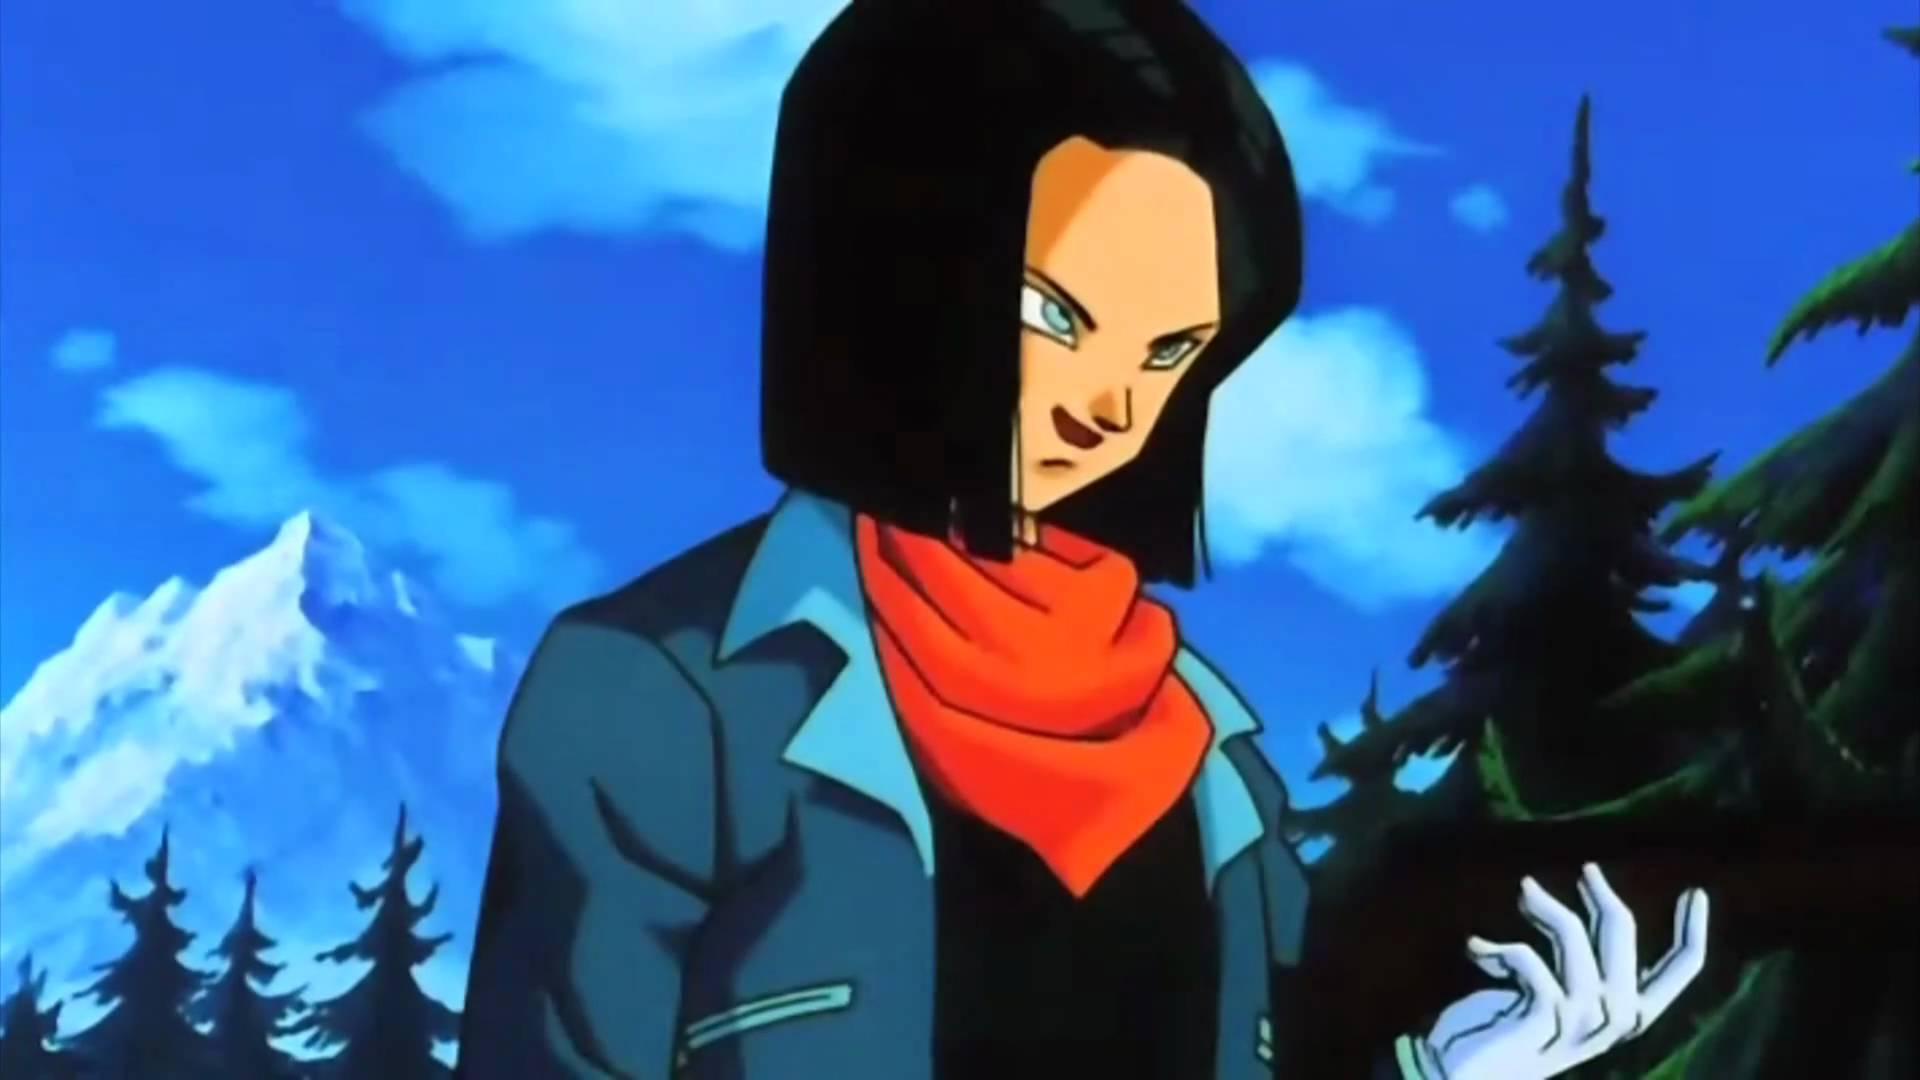 Dragon Ball Super Episode 85 Welcomes Back Android 17